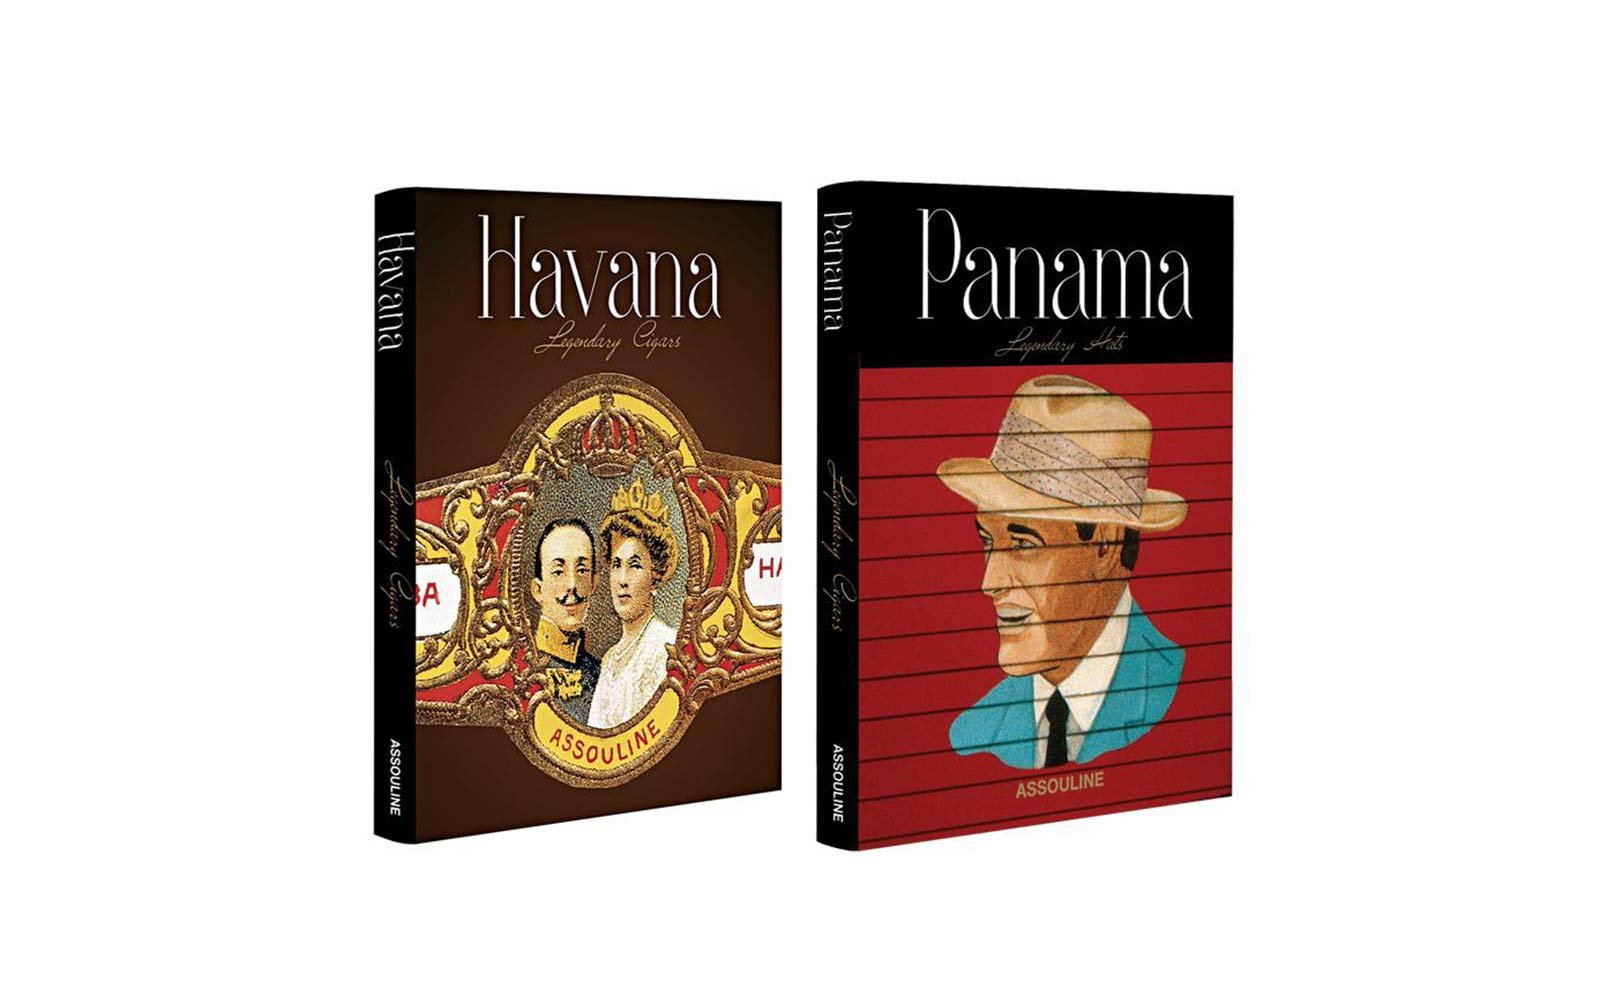 Legendary Set: Panama Hats & Havana Cigars